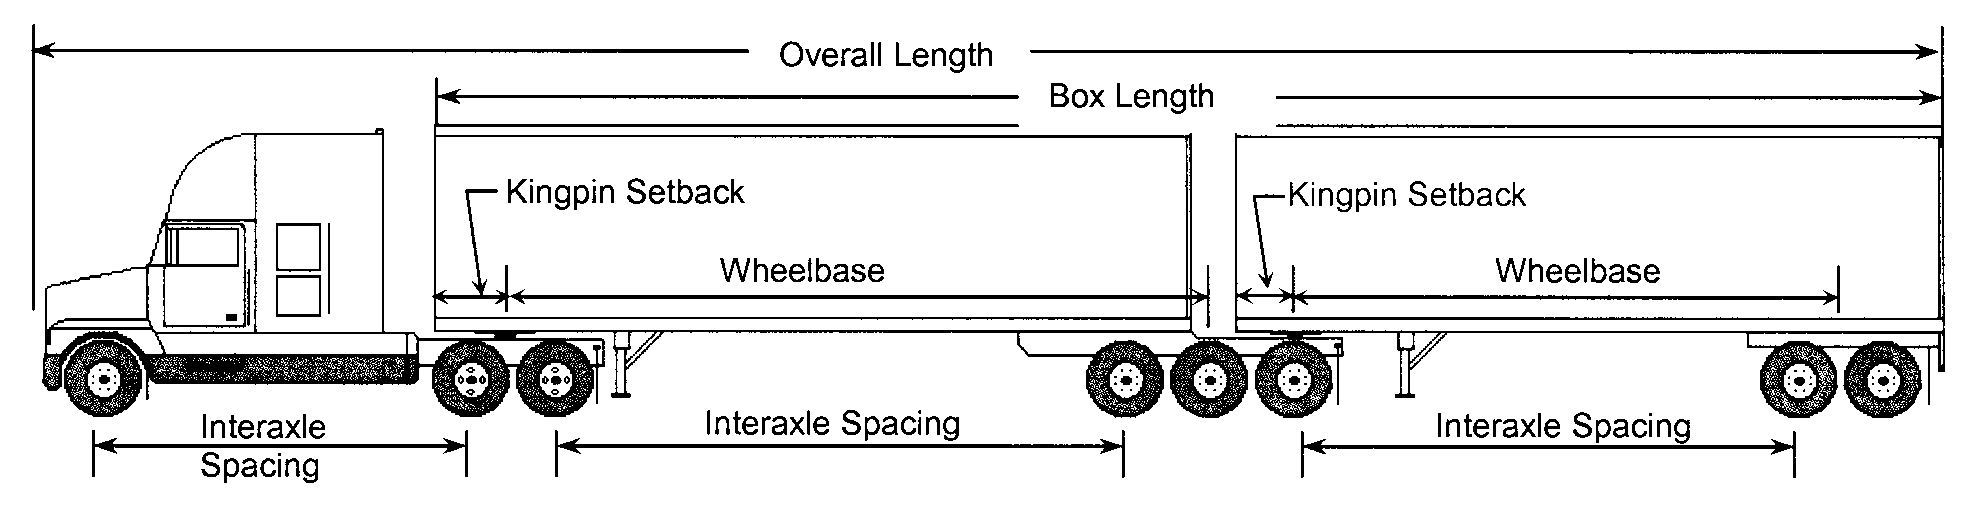 Weights And Dimensions Of Vehicles Regulations Motor